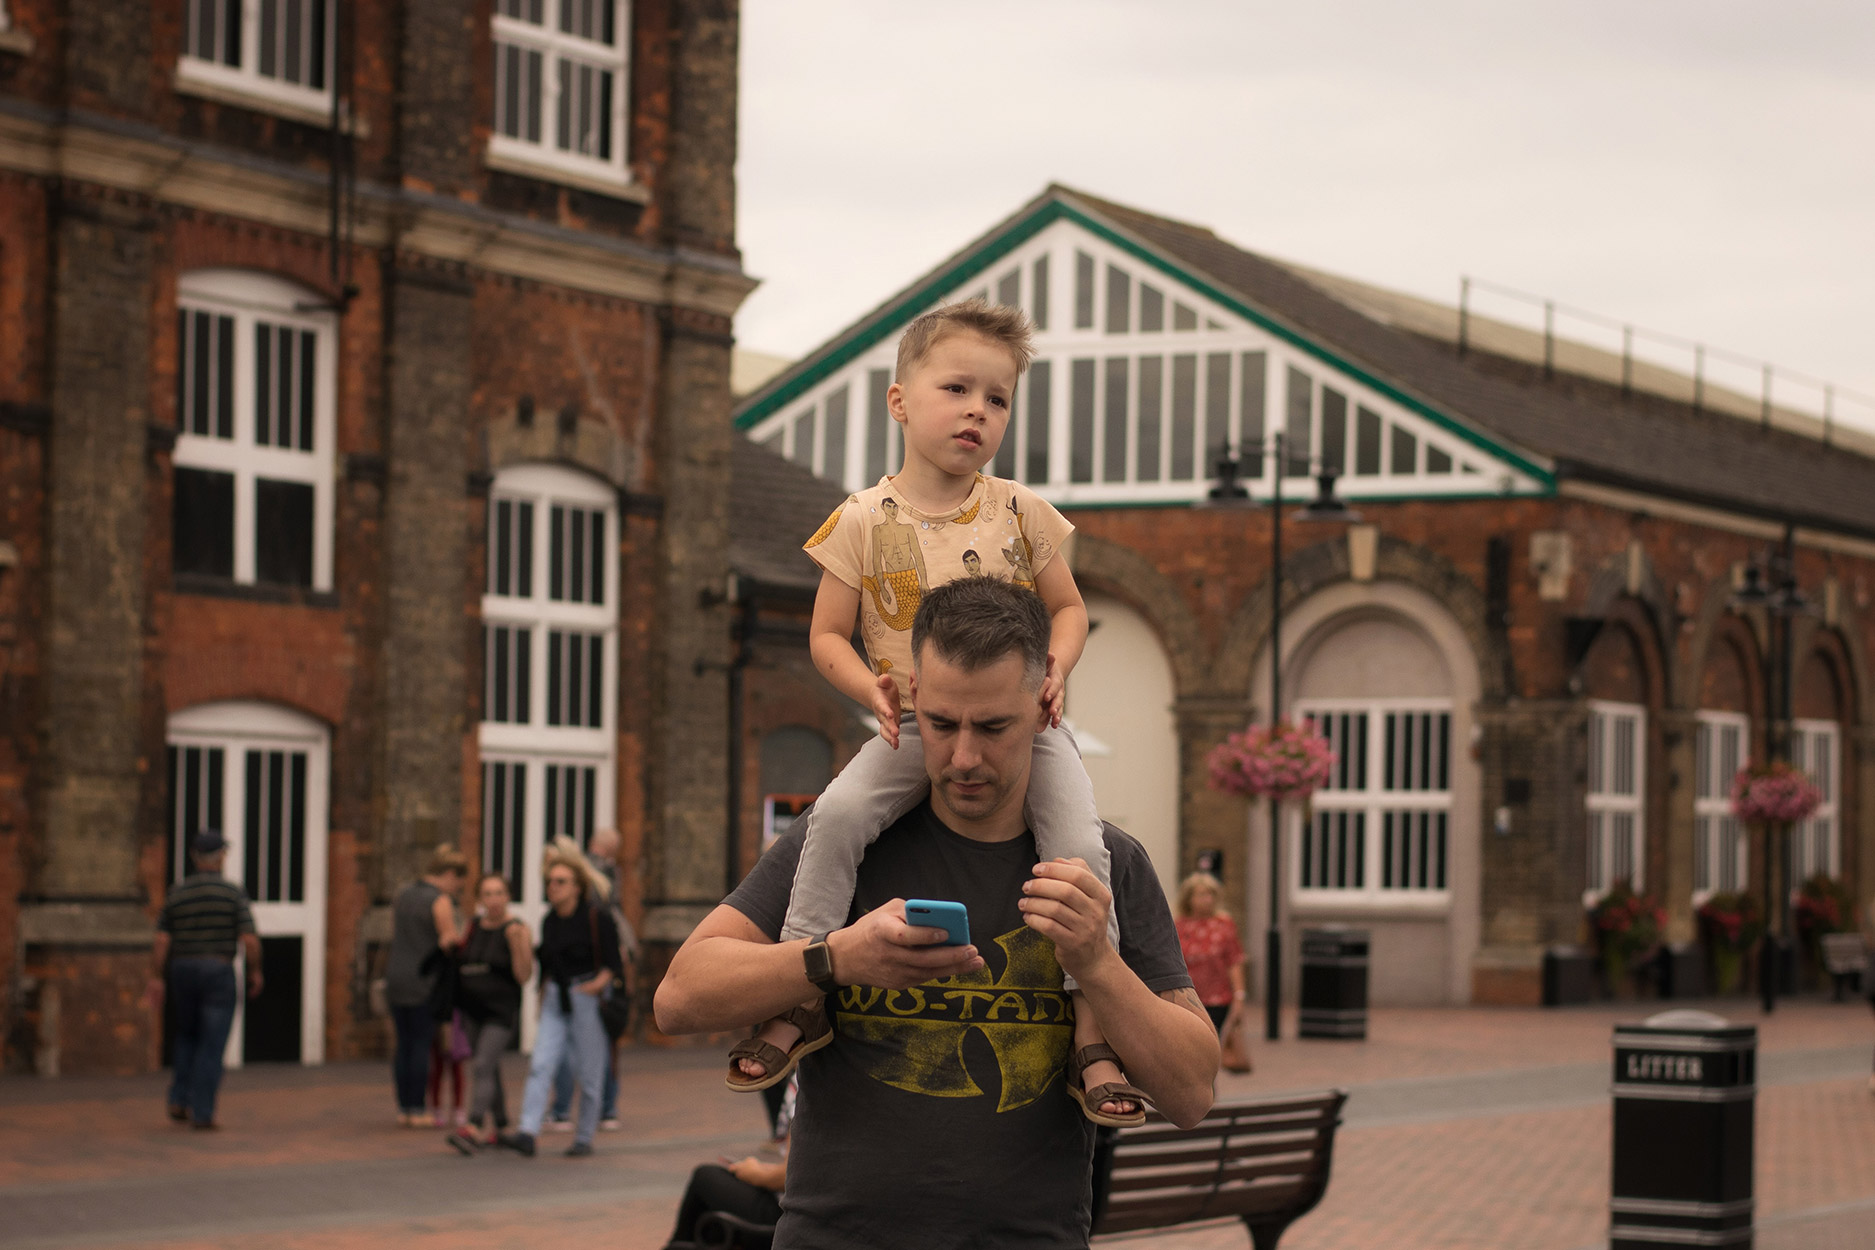 Boy wearing Mini Rodini mercies t-shirt on Dad's shoulders going to Wagamama's for dinner